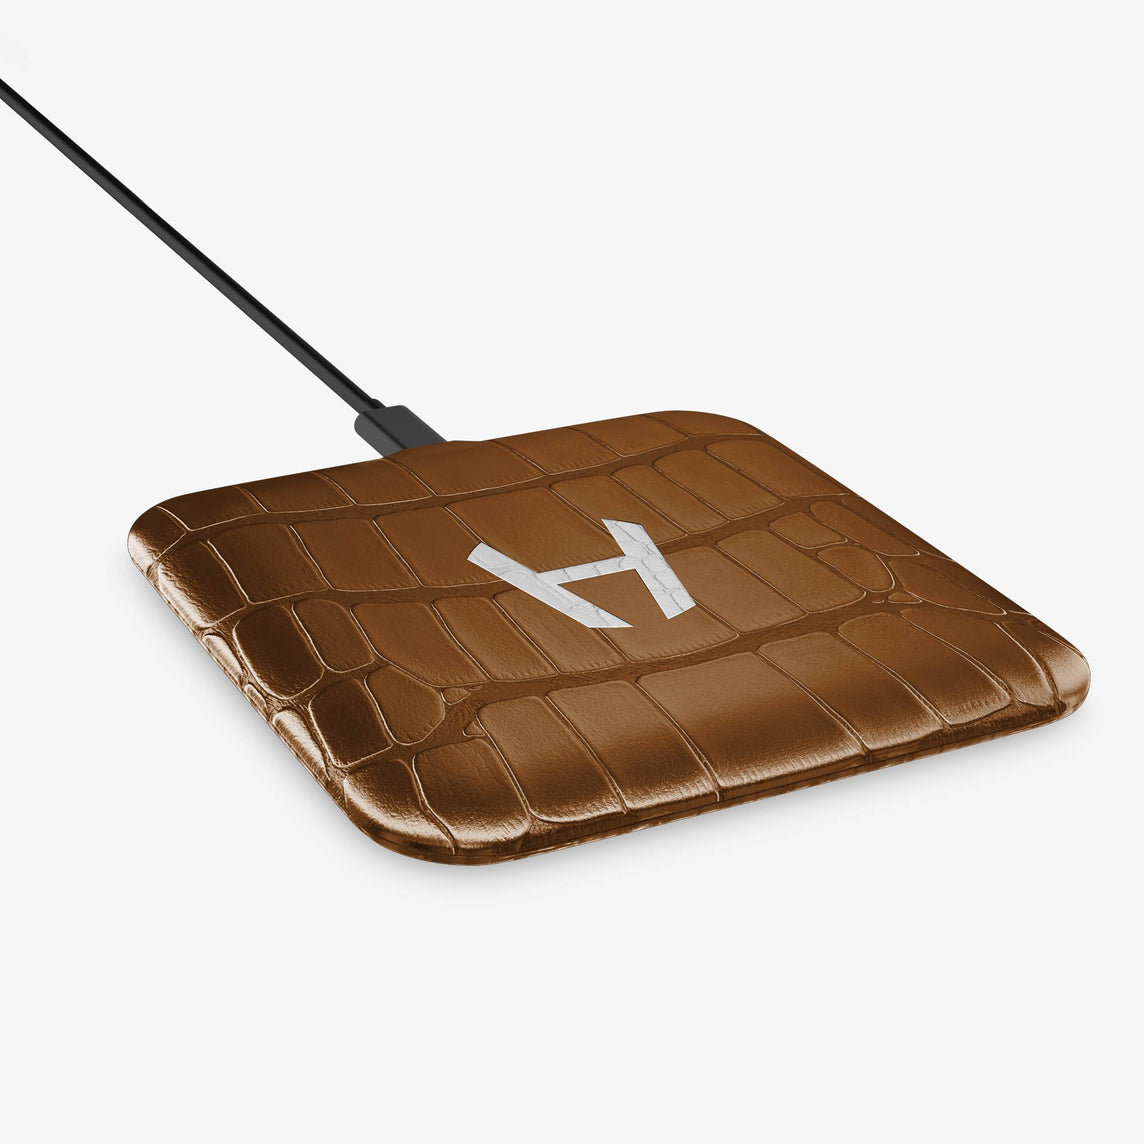 Alligator Hadoro Wireless Charging Pad | Cognac - Stainless Steel without-personalization